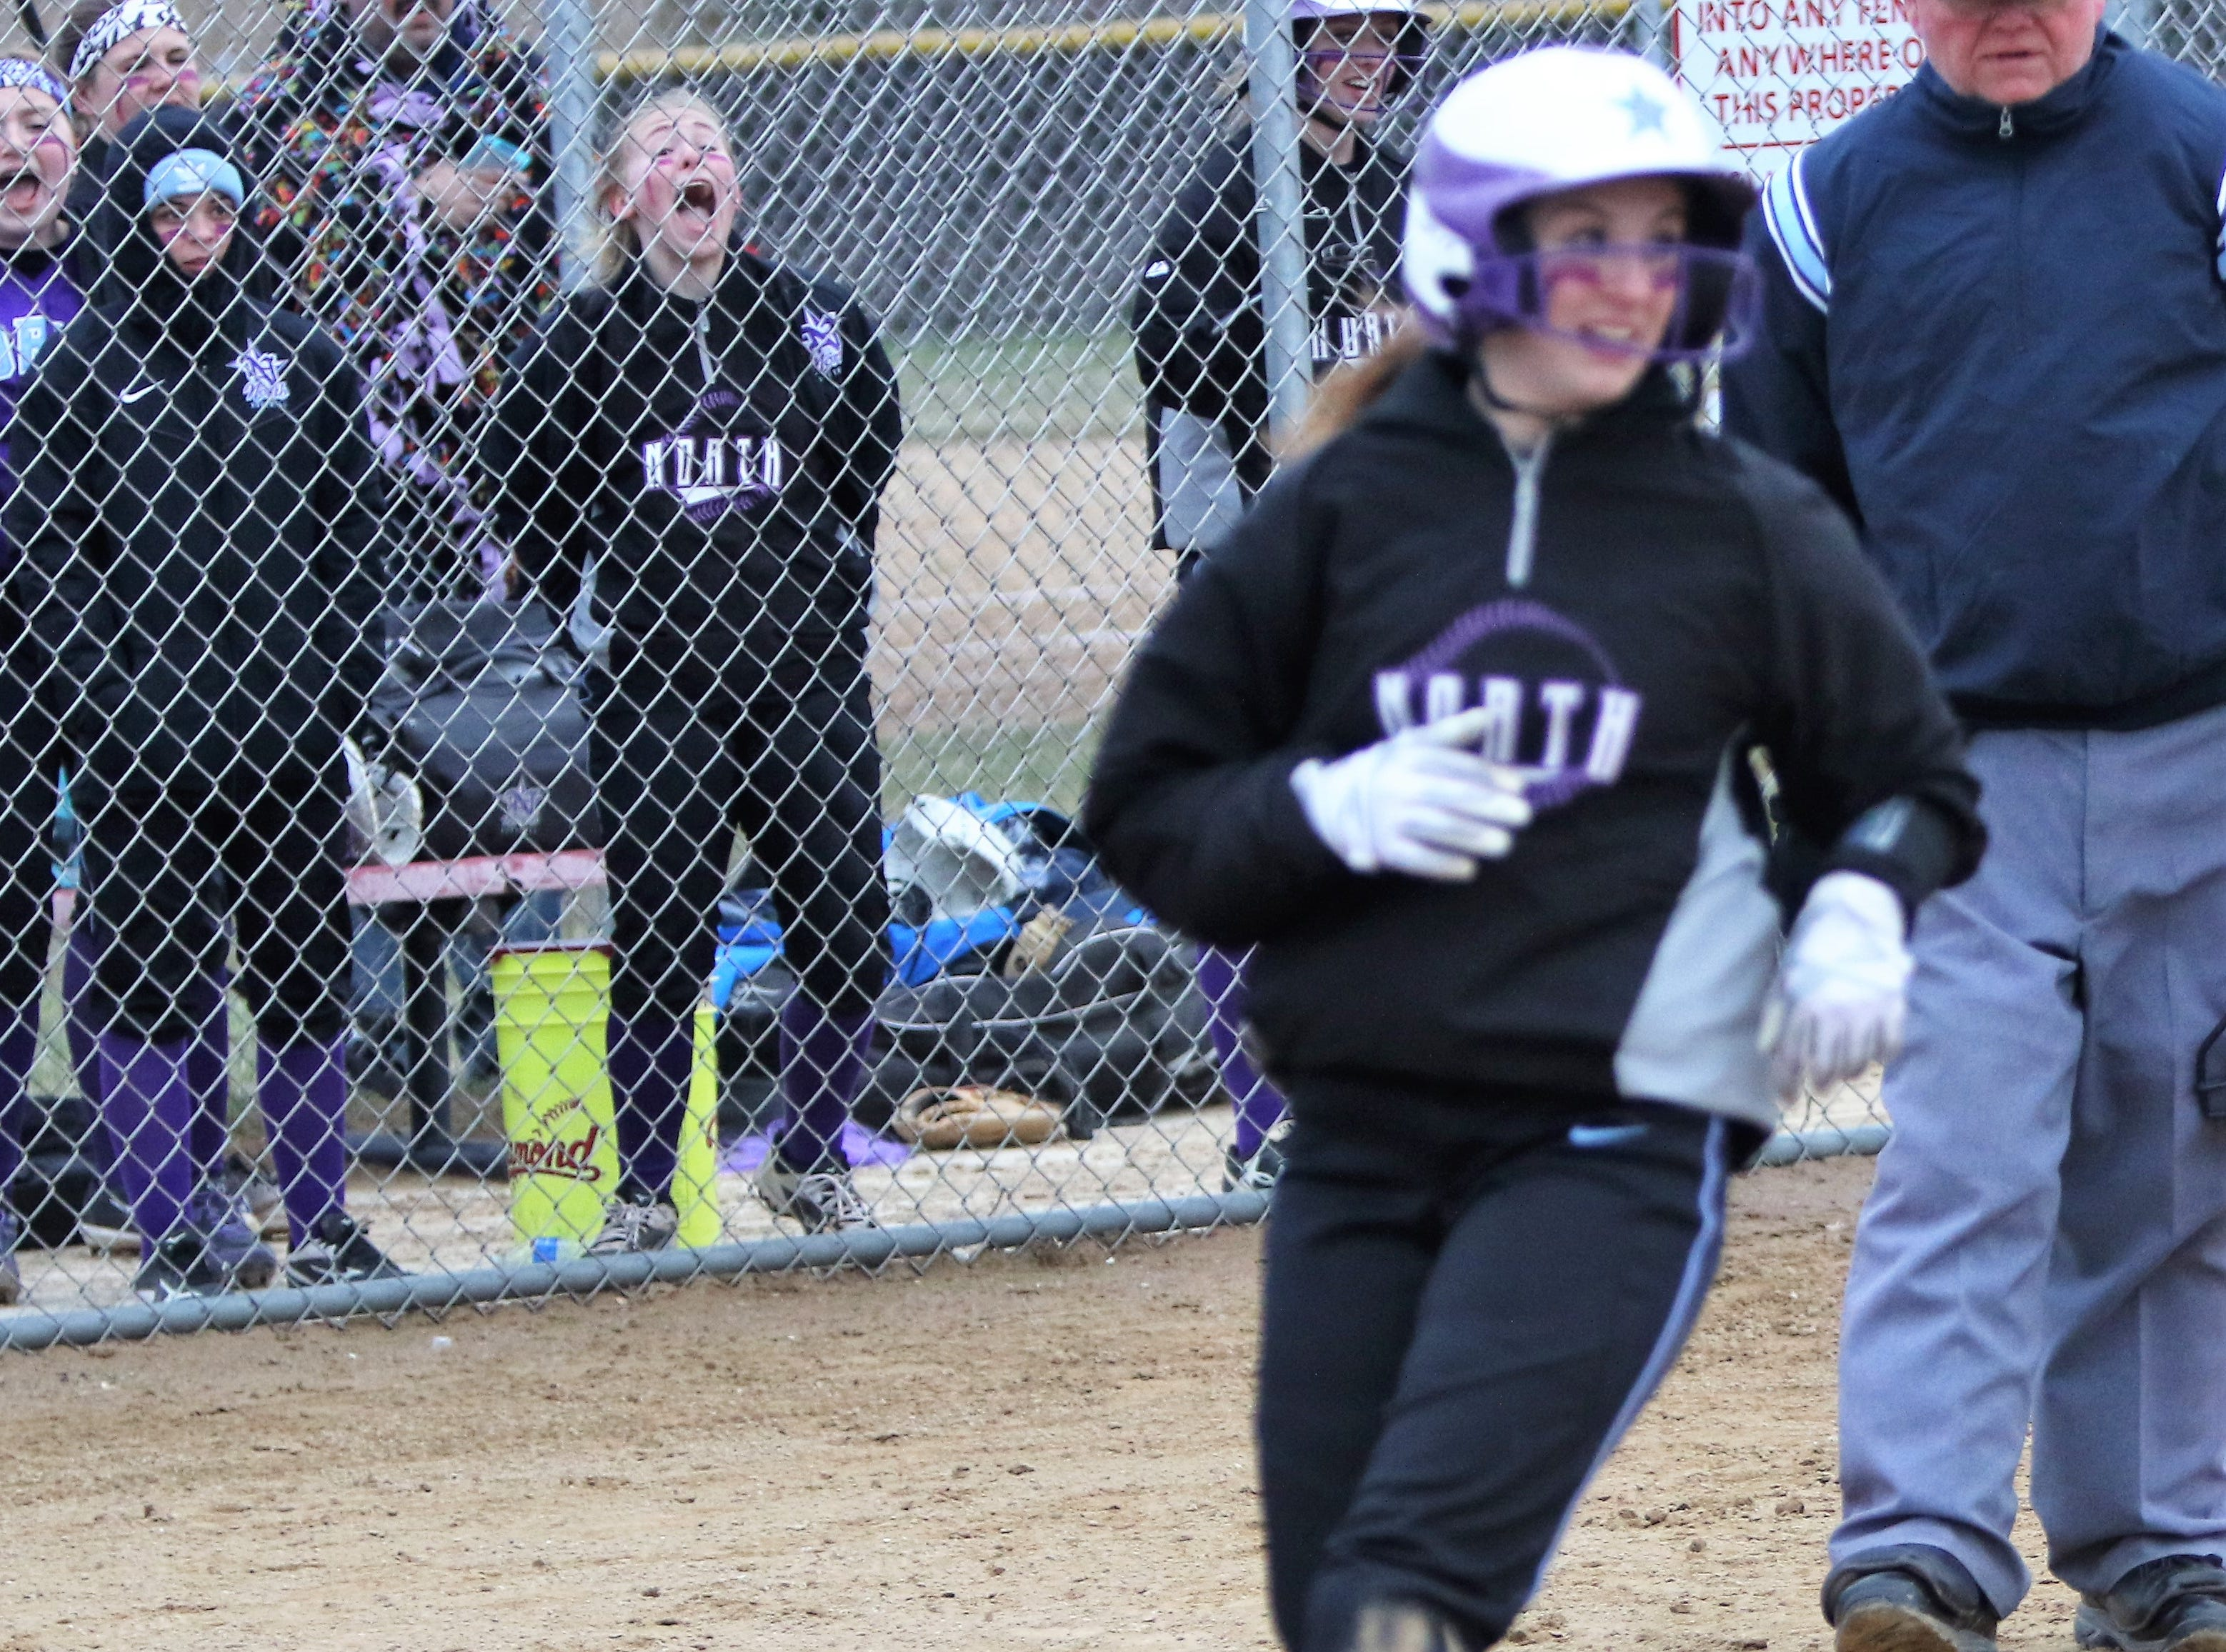 Waukesha North teammates react as teammate Jenny Gibbs scores a run against Muskego on April 12, 2019.